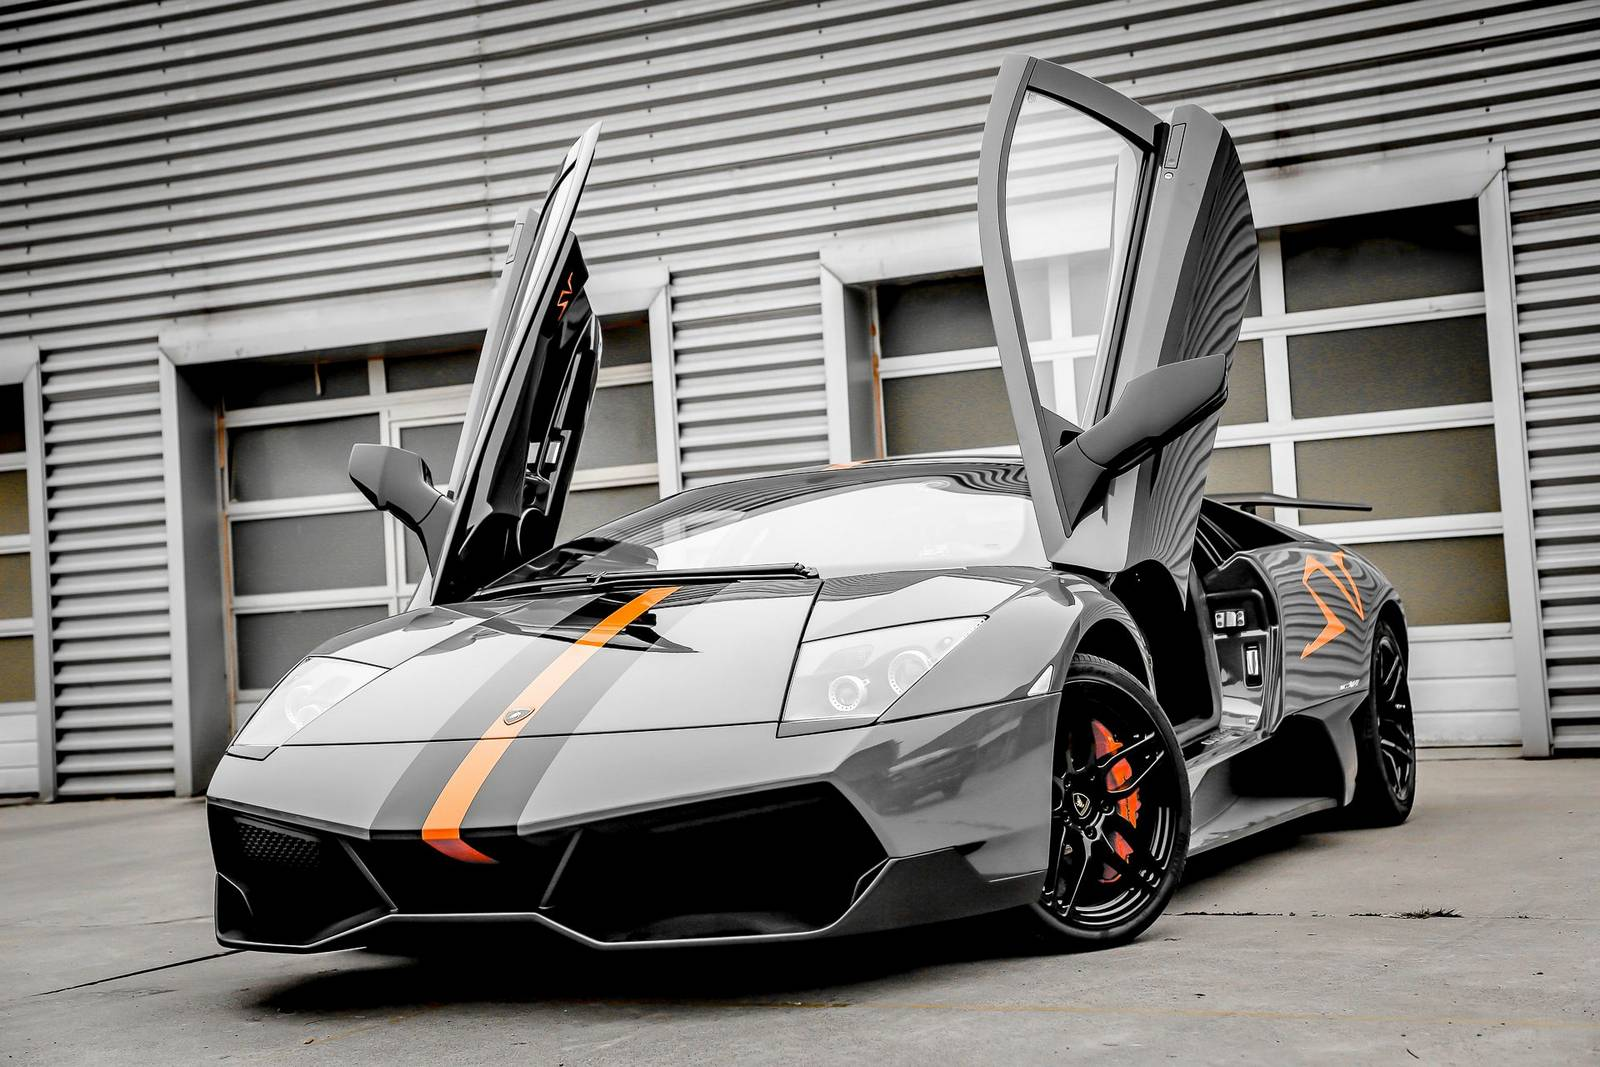 Nice Awesome Videos Of Lamborghini Murcielago LP670 4 SV With Armytrix Exhaust